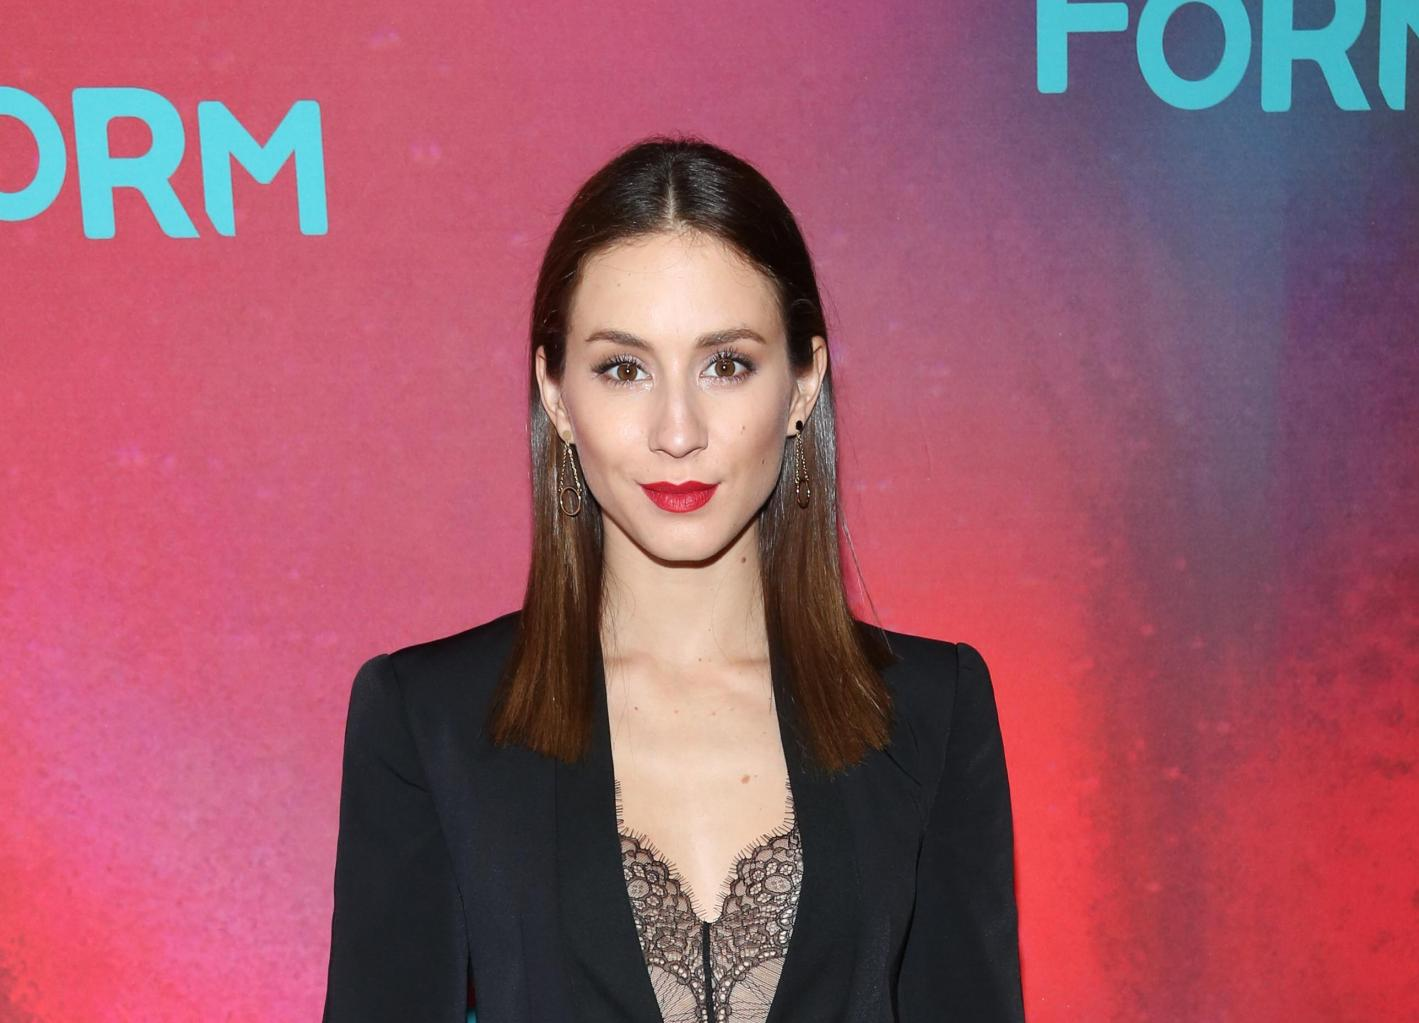 Pretty Little Liars      '  Star Troian Bellisario Opens Up About Her Struggle With Mental Illness For Lenny Letter